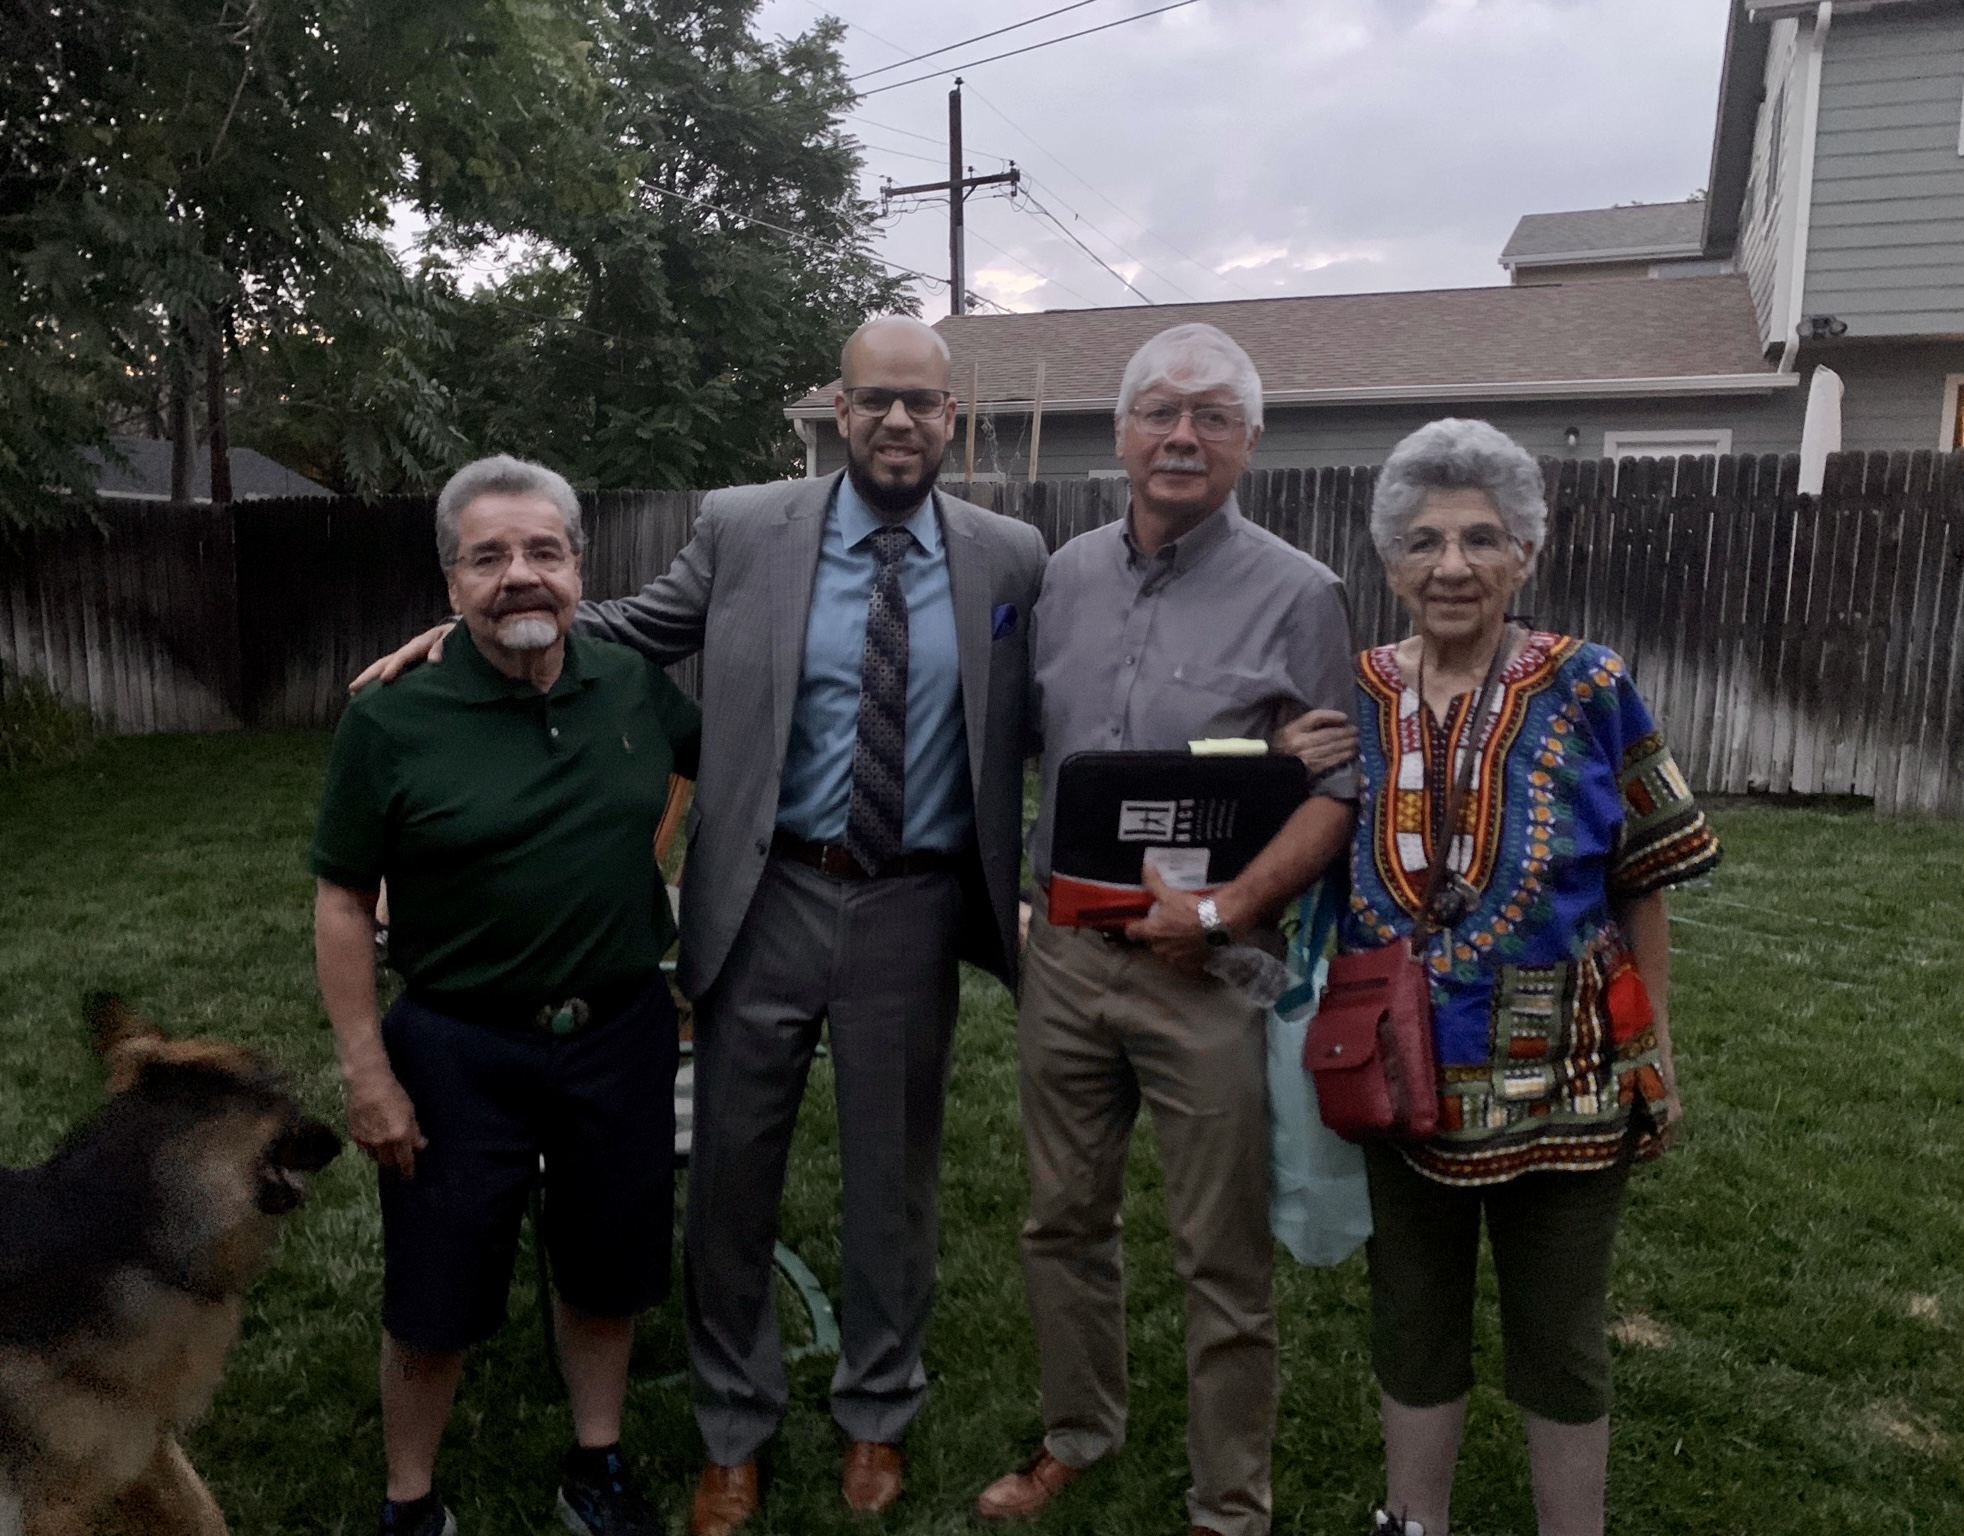 Dr. Alex Marrero poses with three community members in a backyard setting